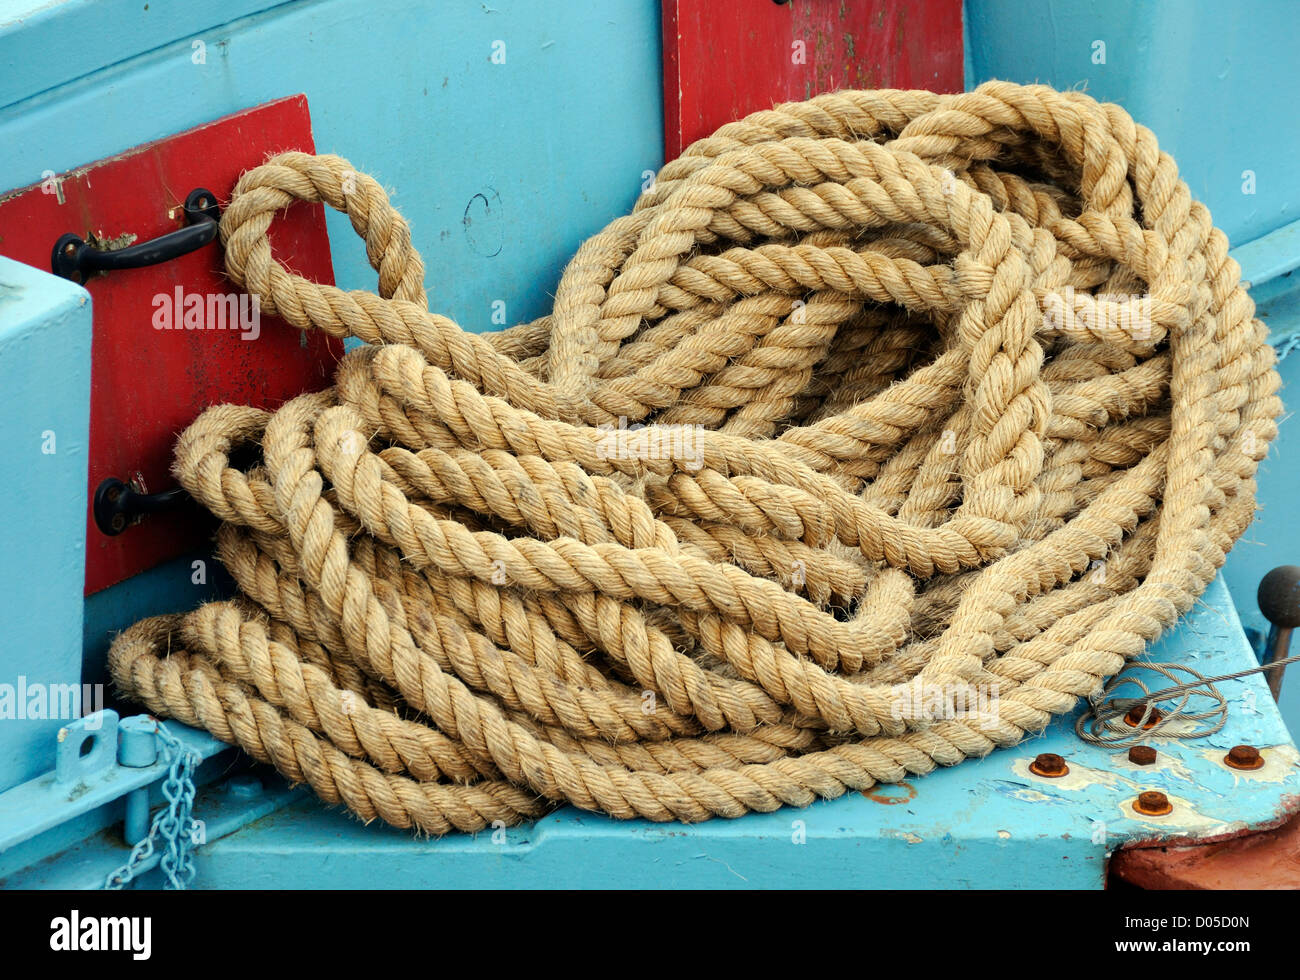 A coil of natural fibre rope in a fishing boat. Scrabster, Caithness, Scotland, UK. - Stock Image